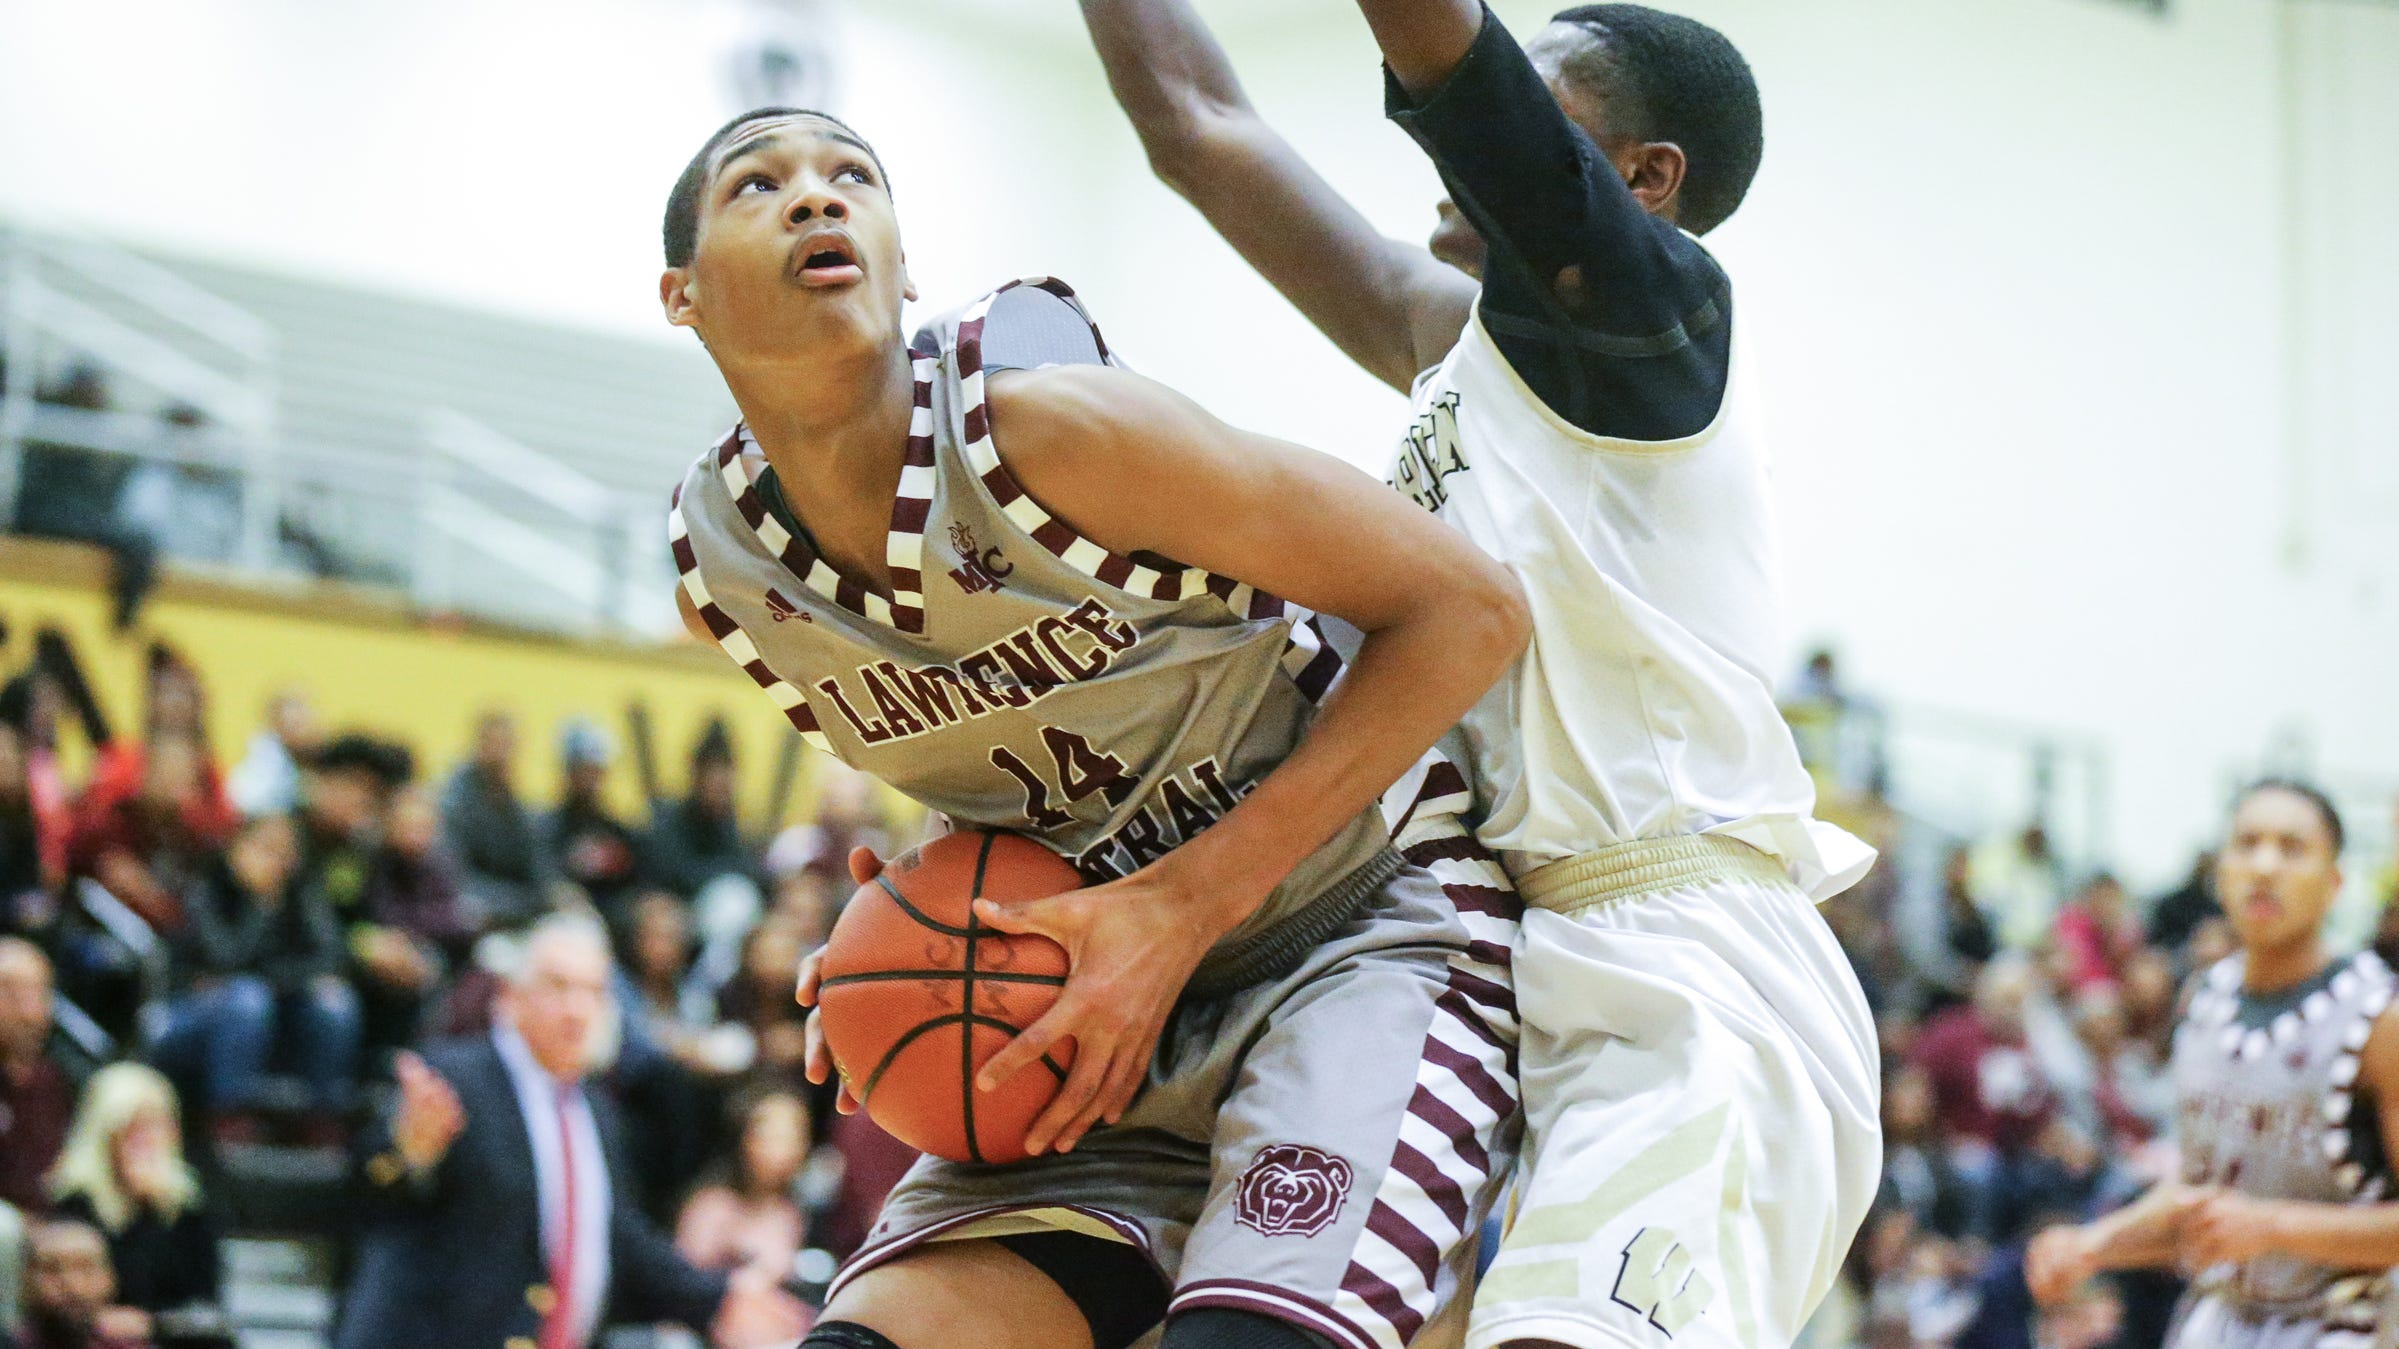 Lawrence Central's D'Andre Davis boxes out against Jesse Bingham (11) during a Marion County Basketball Tournament game at Warren Central High School on Tuesday, Jan. 9, 2018.